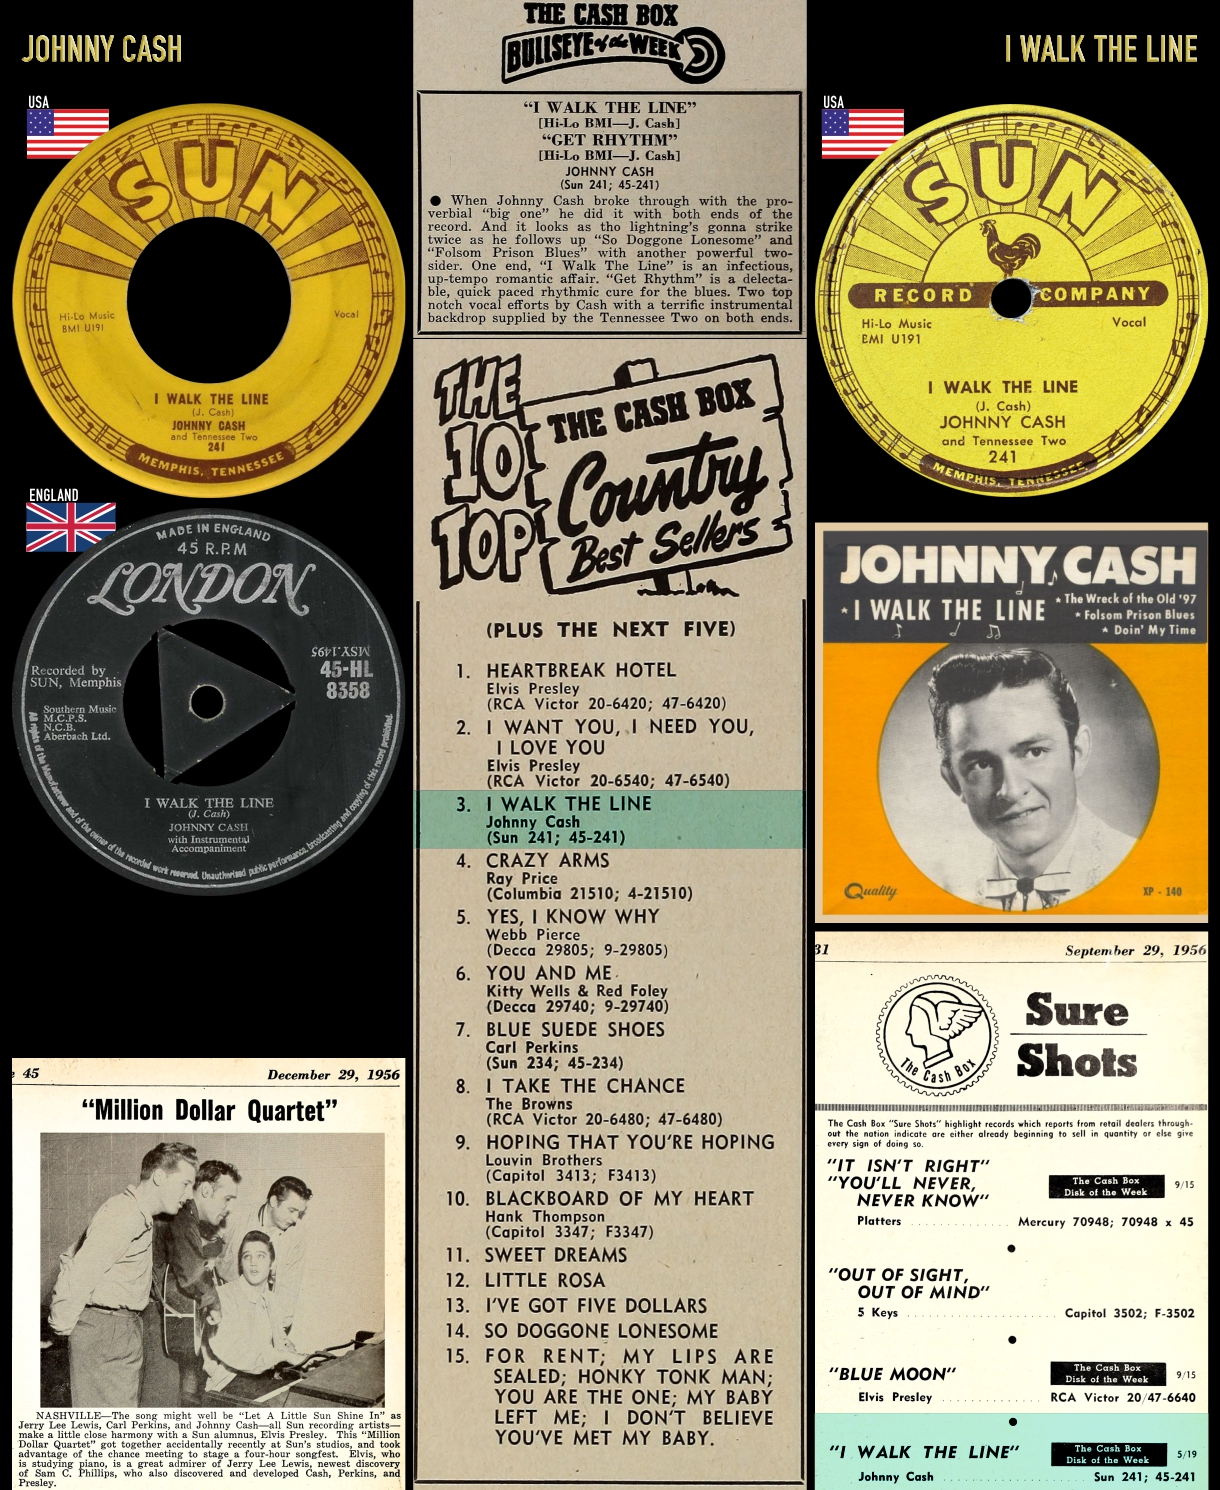 560915_Johnny Cash_I Walk The Line